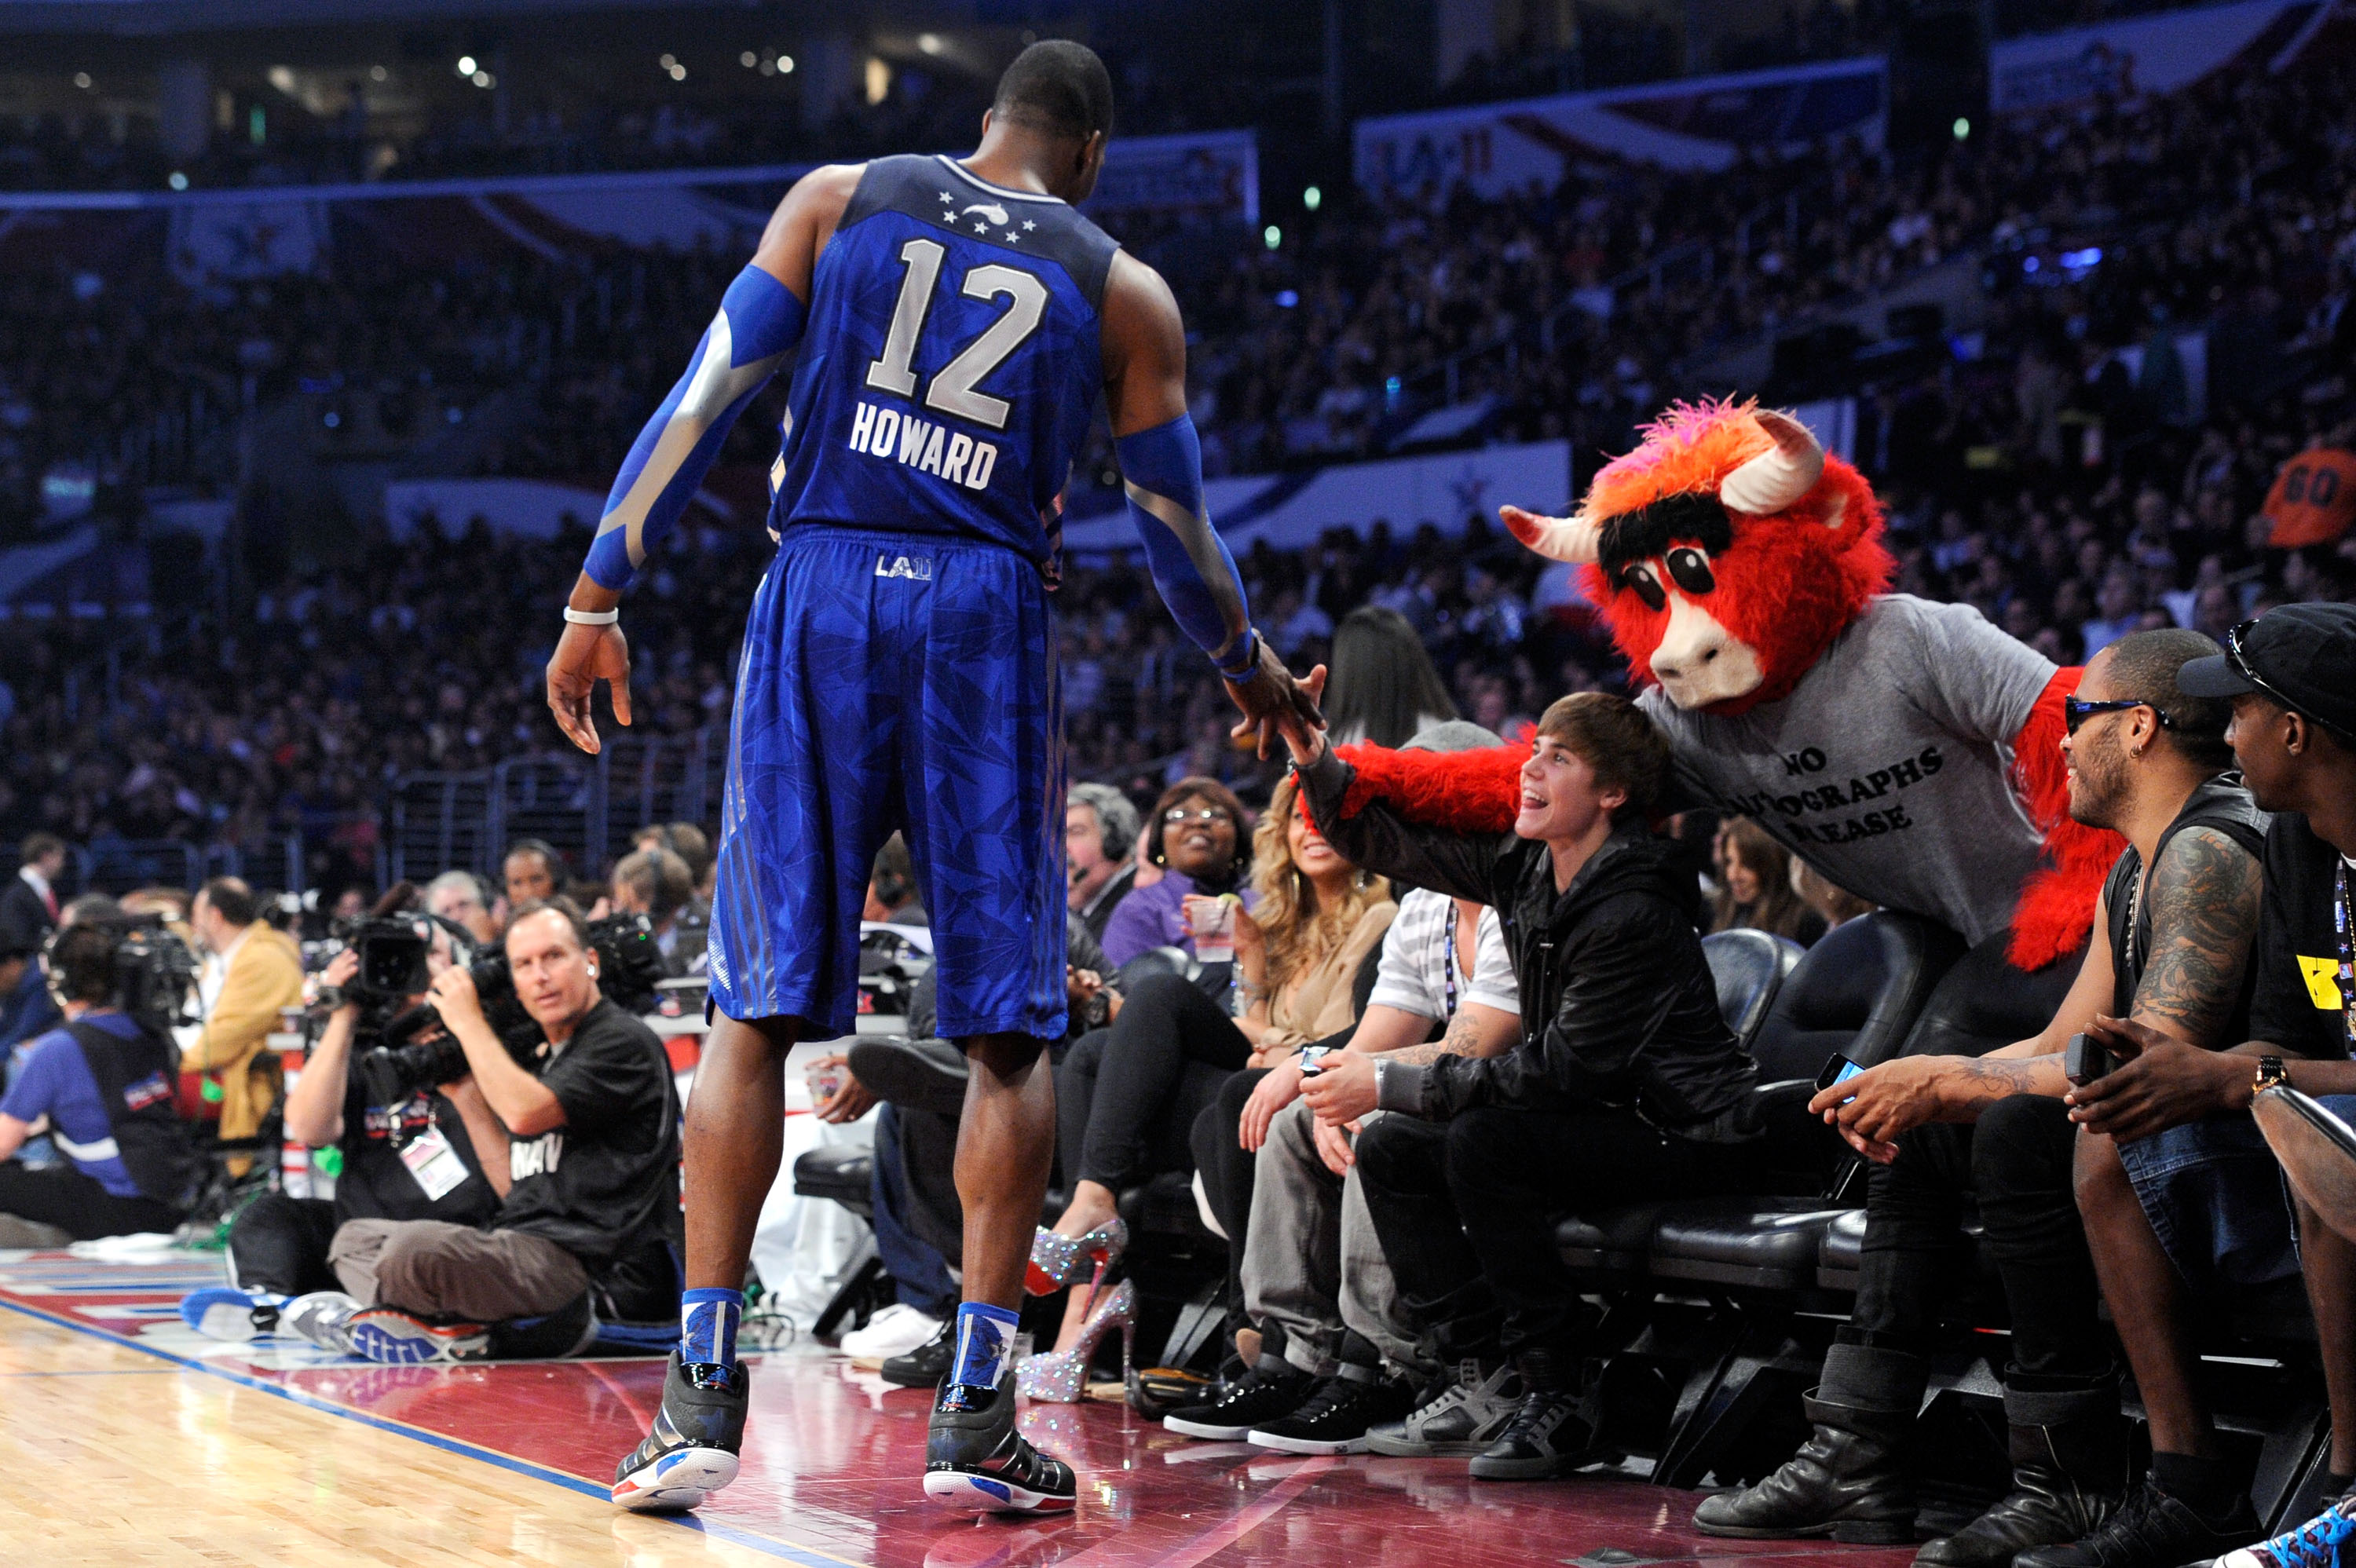 LOS ANGELES, CA - FEBRUARY 20:  (L-R) Dwight Howard #12 of the Orlando Magic and the Eastern Conference, singer Justin Bieber, and Chicago Bulls mascot 'Benny the Bull' courtside during the 2011 NBA All-Star game at Staples Center on February 20, 2011 in